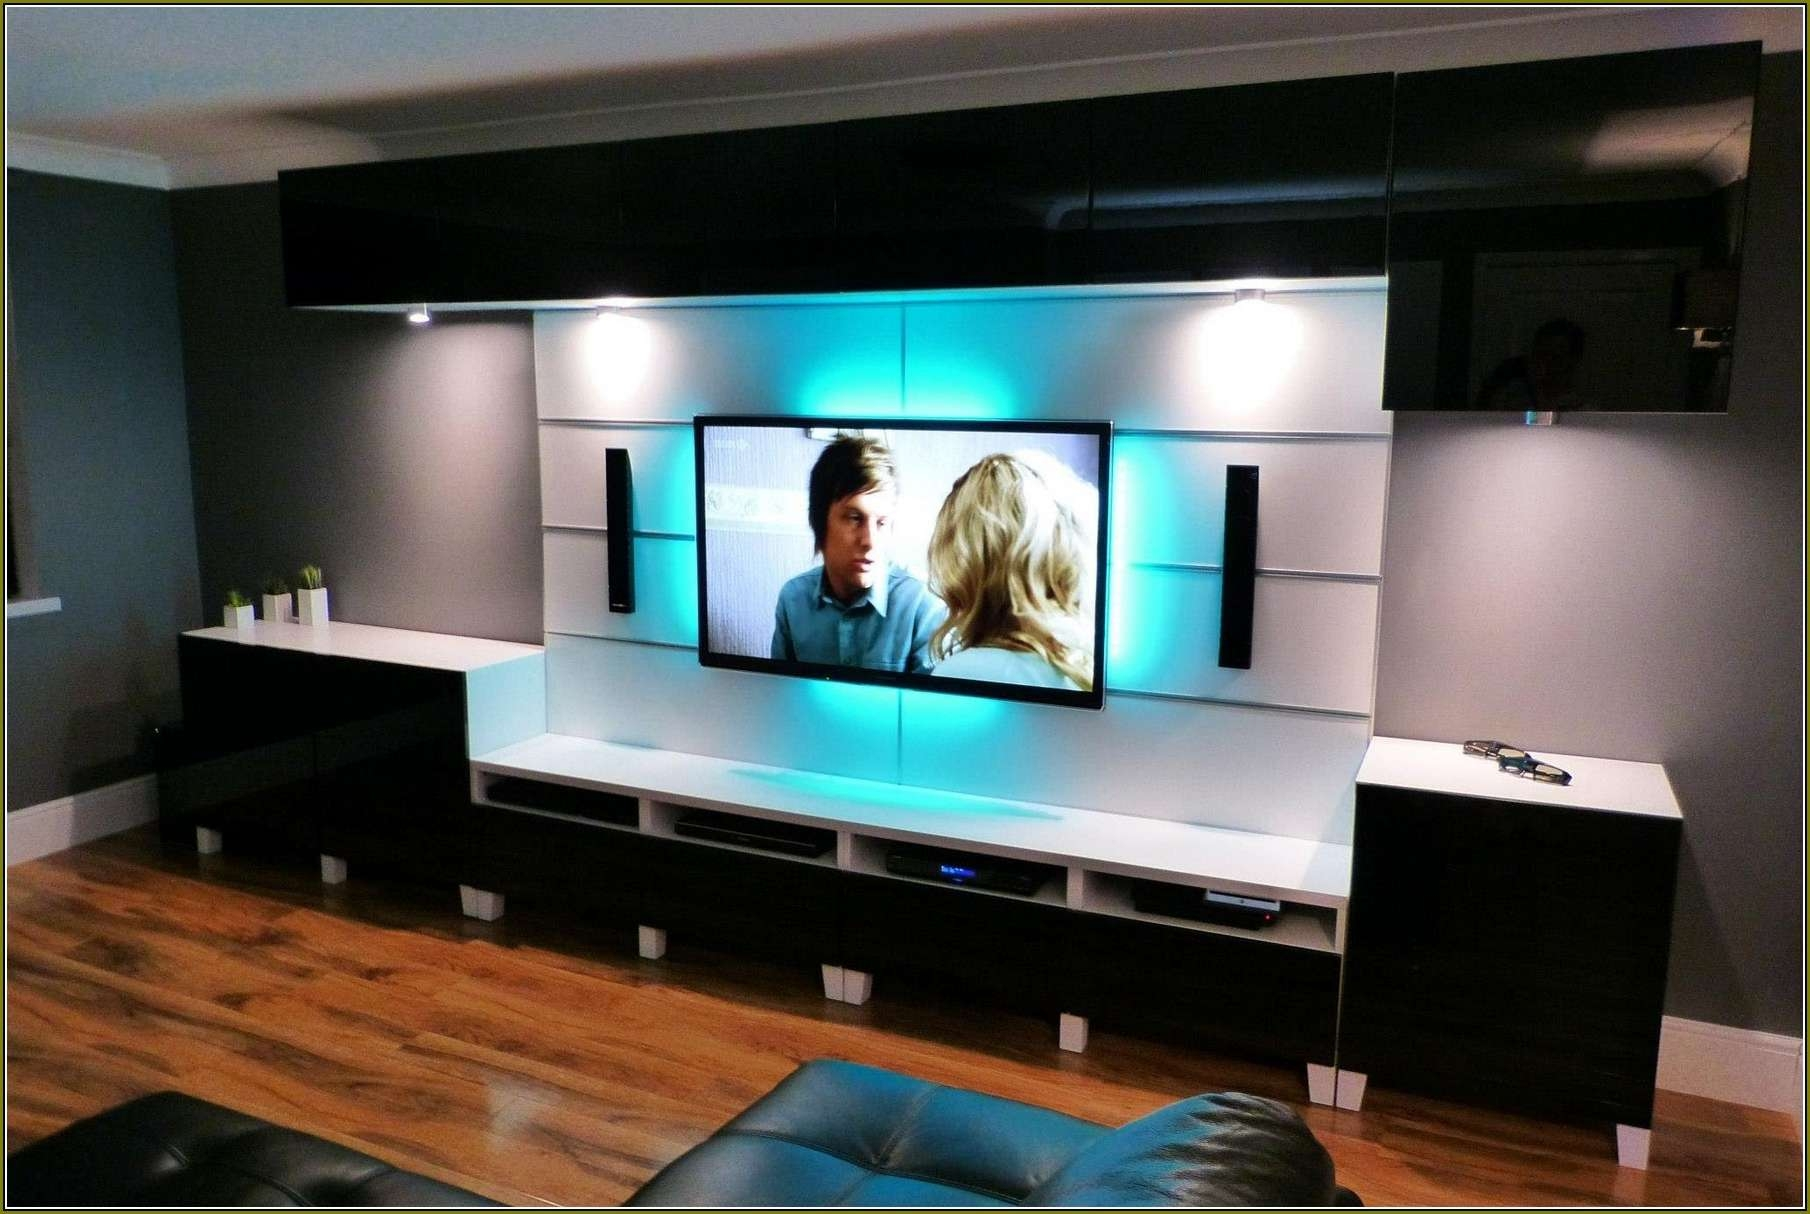 White Solid Wood Wall Mount Tv Stand With Blue Led Light Of With Regard To Tv Stands With Led Lights (View 12 of 15)